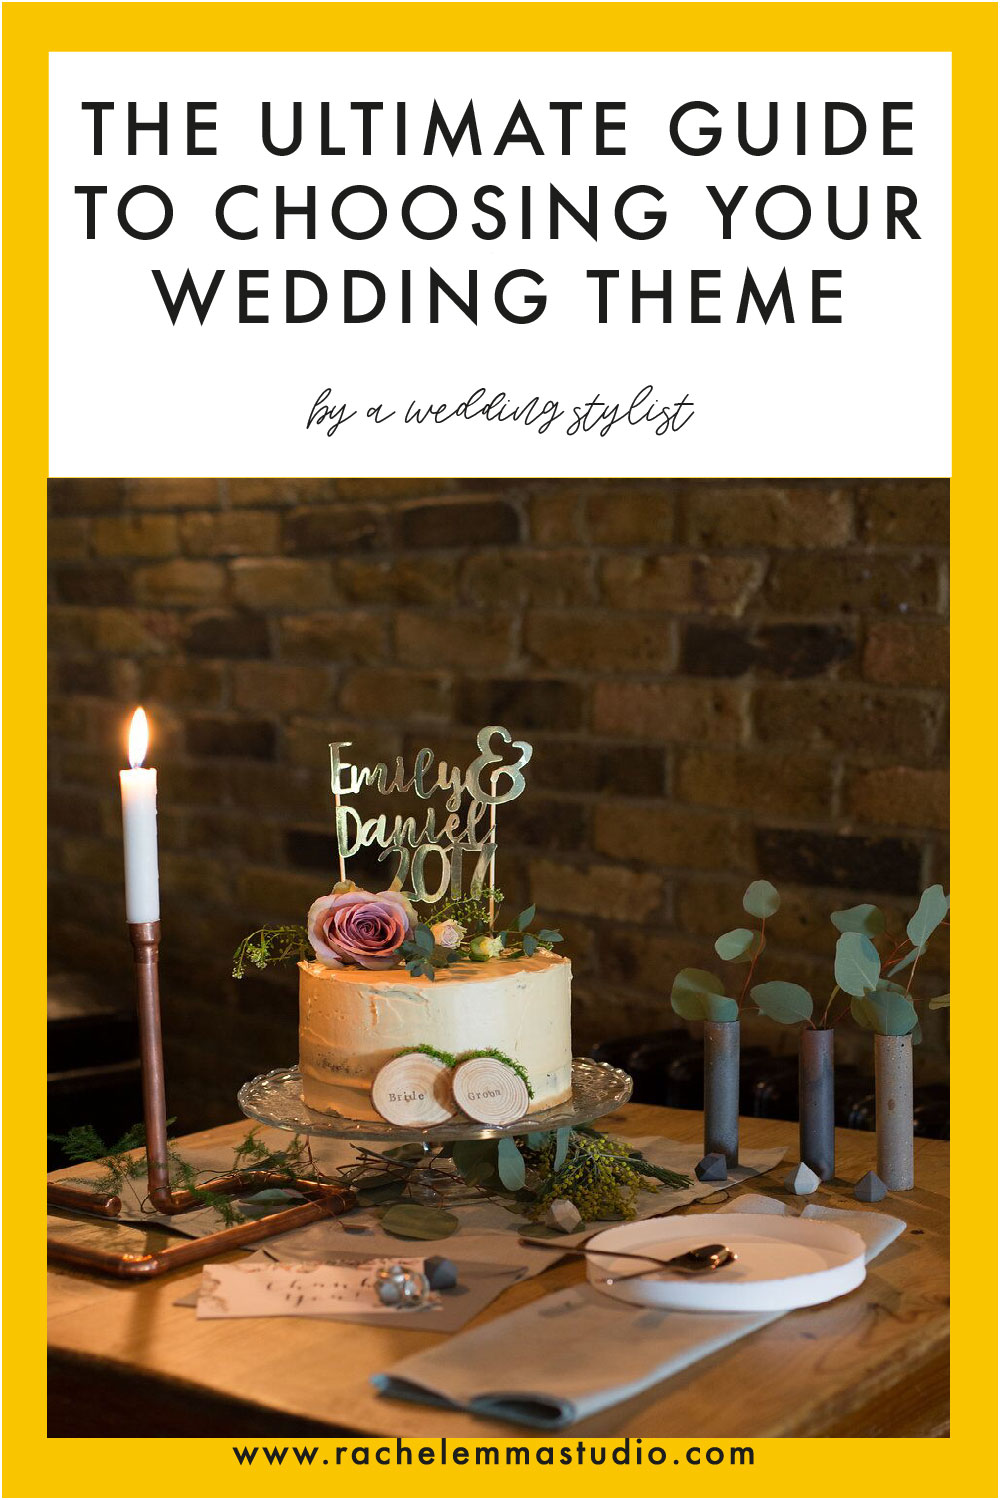 The Ultimate Guide To Choosing Your Wedding Theme Rachel Emma